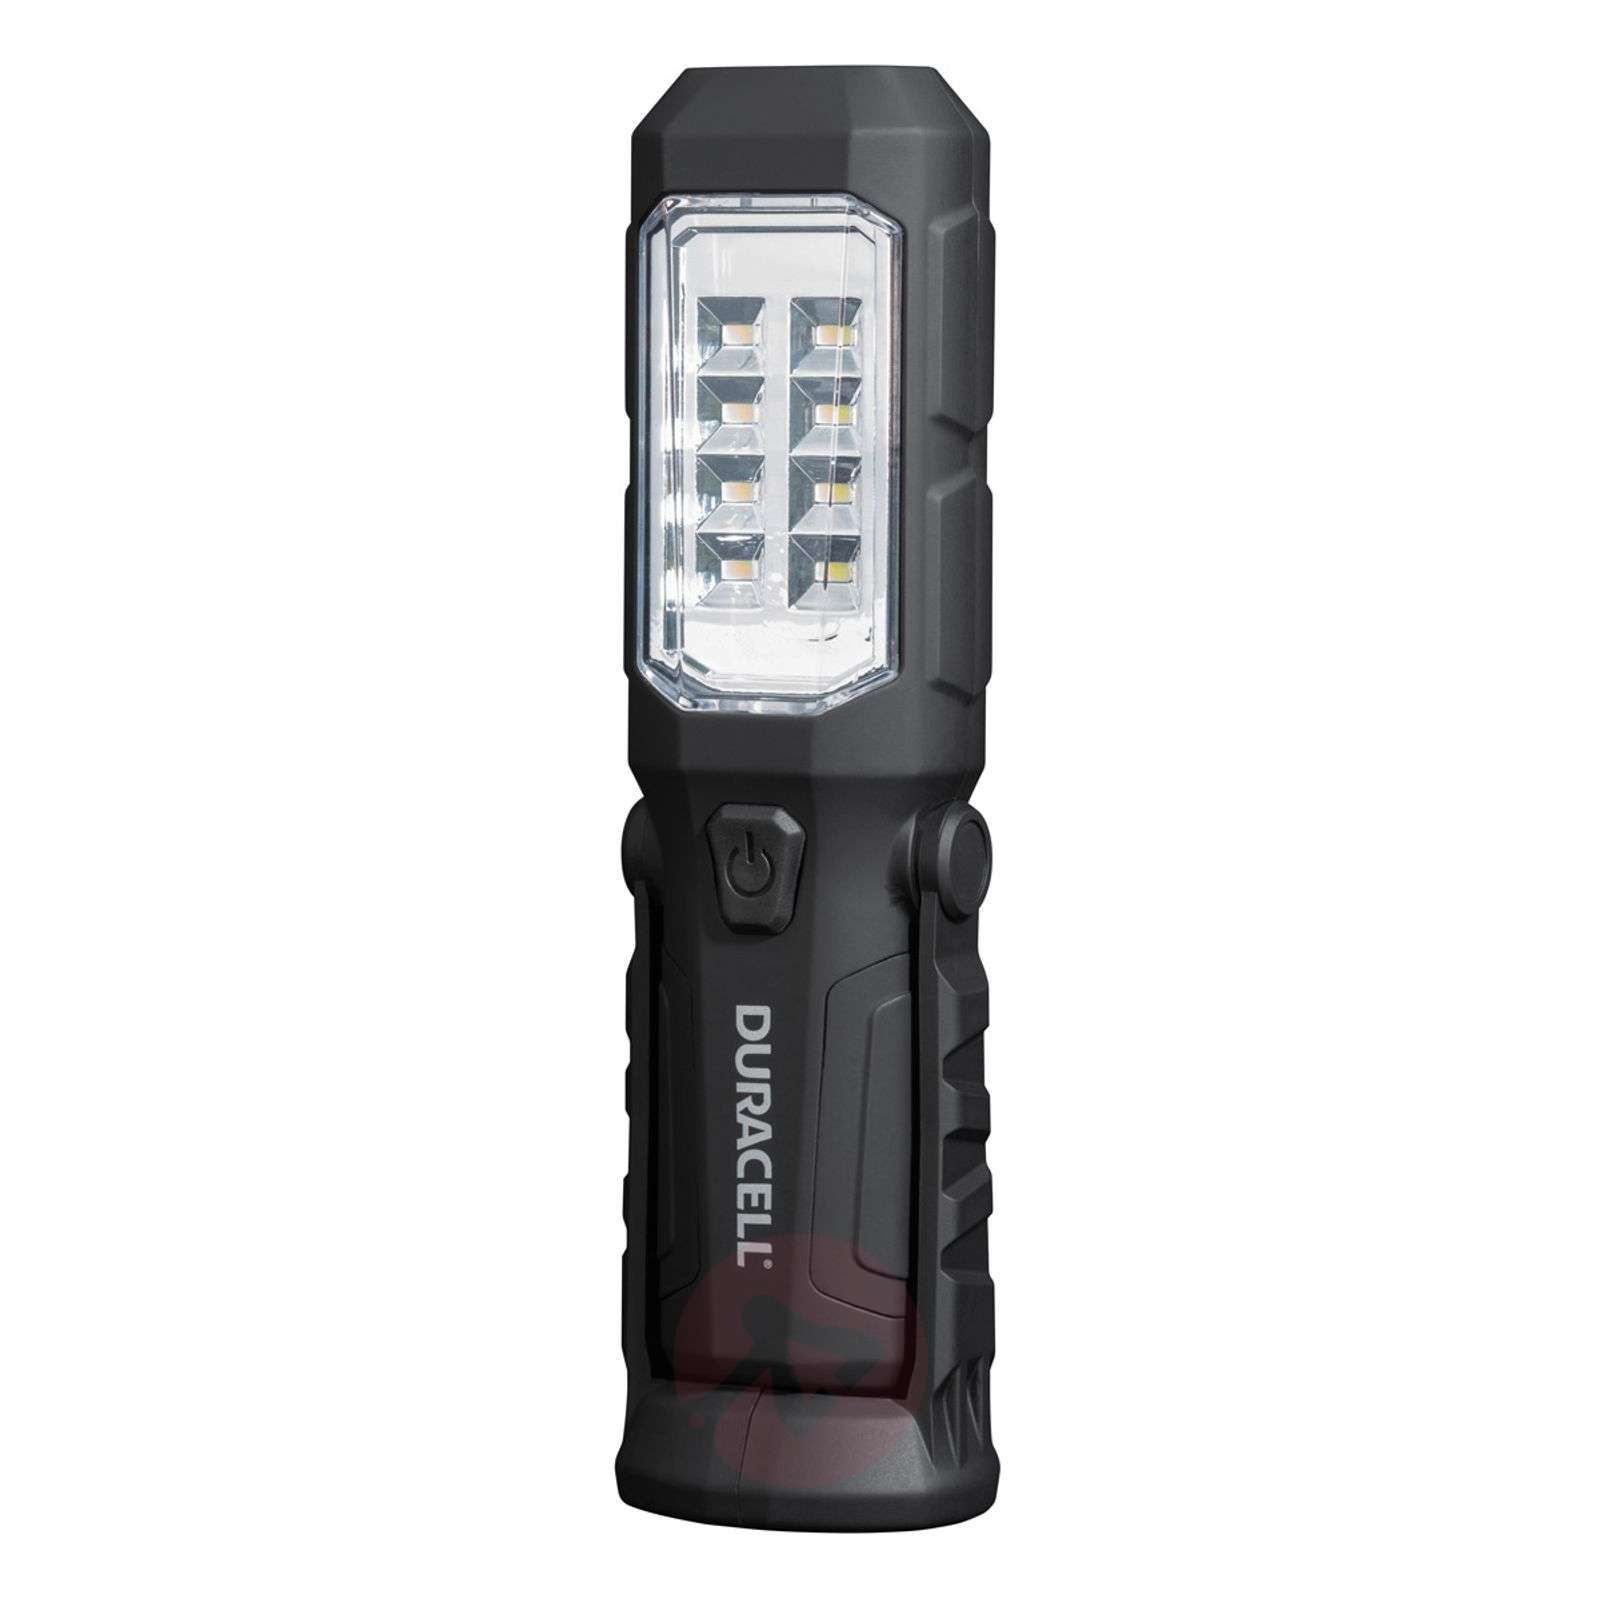 Compact WKL-1 LED torch-2610025-01